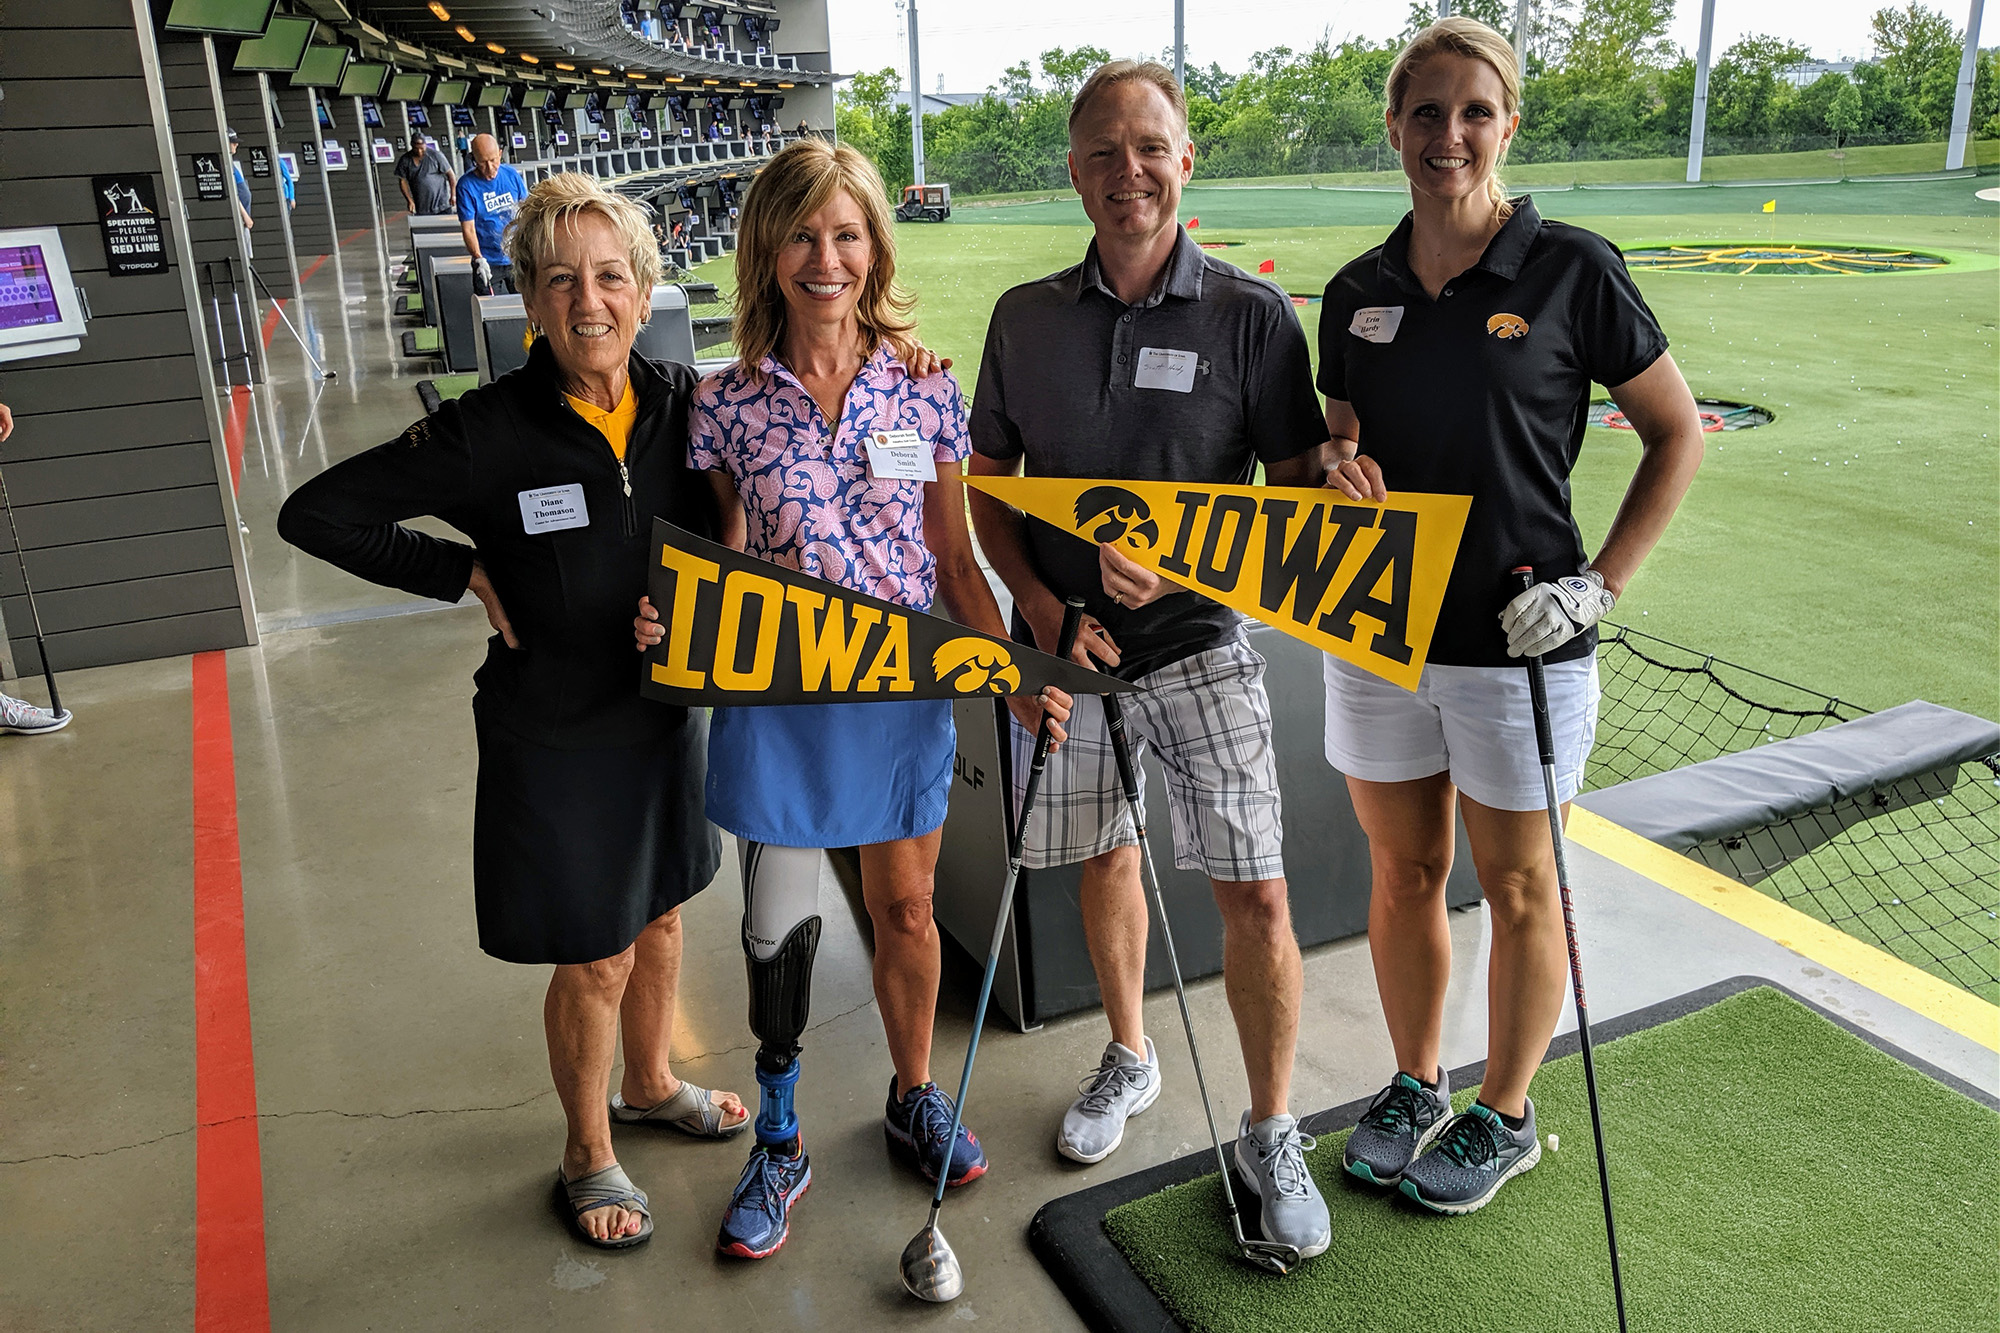 University of Iowa alumna Deborah Smith stands with three friends at a golf facility